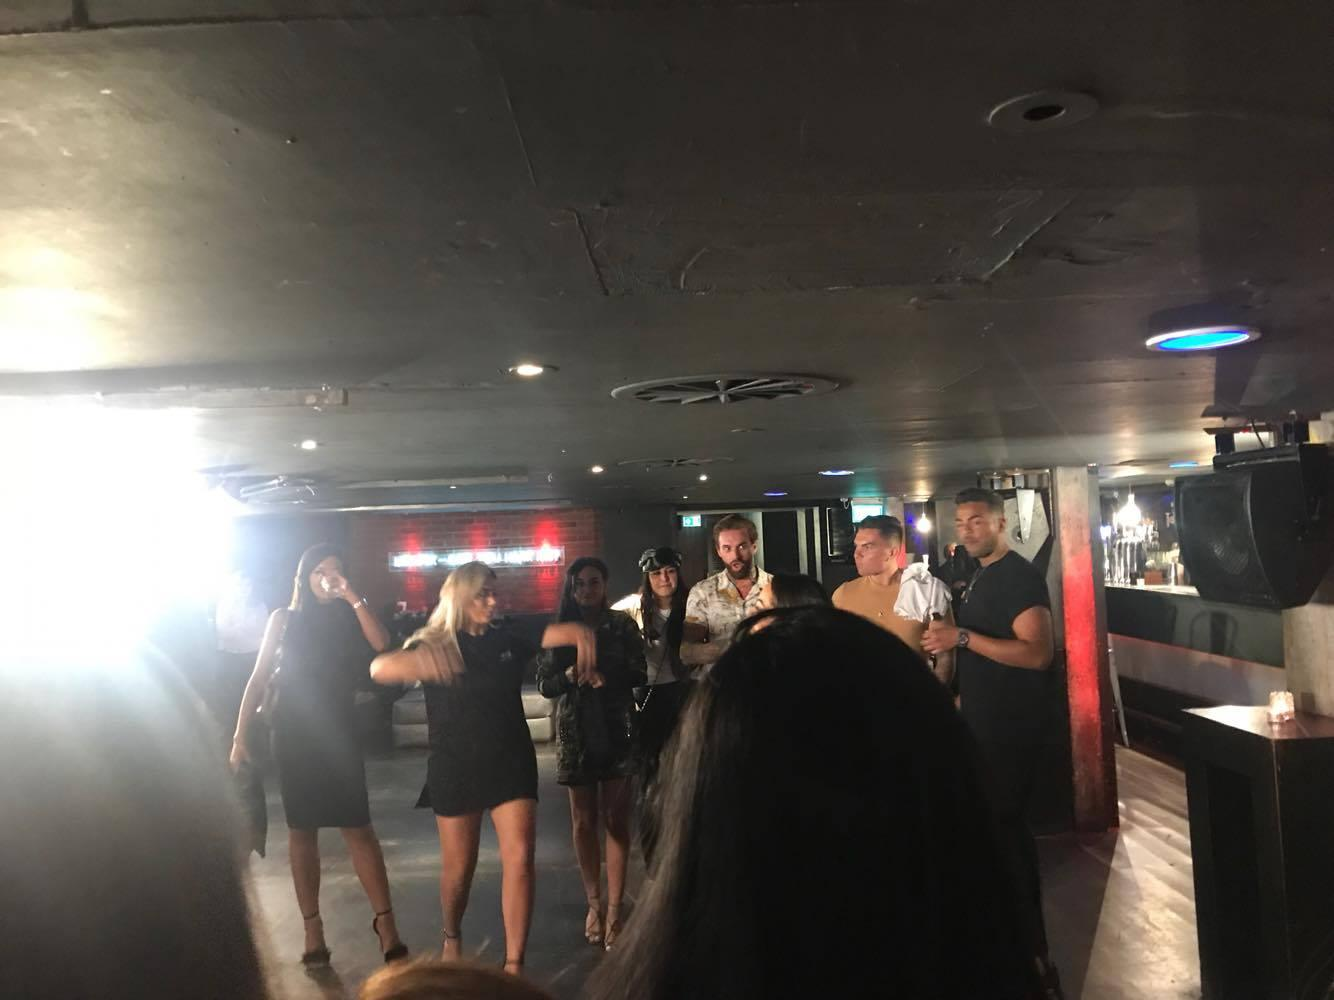 The Geordie Shore cast briefing their lucky team of extras